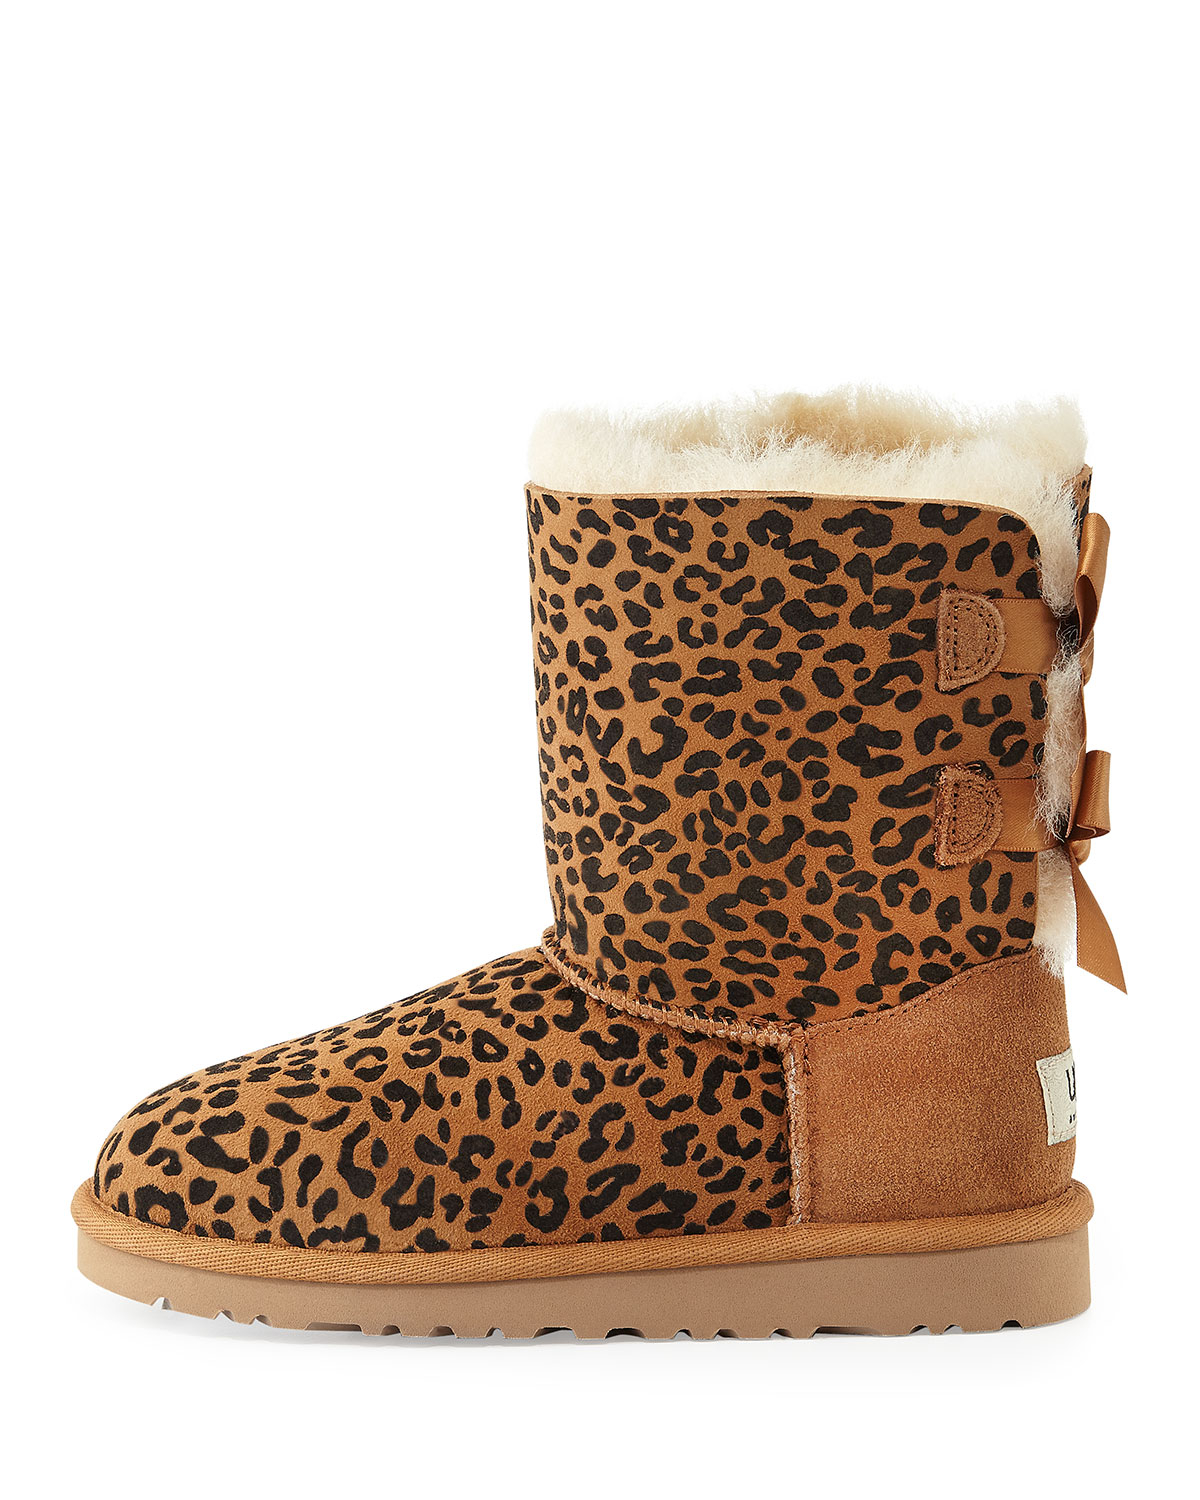 white cheetah print uggs